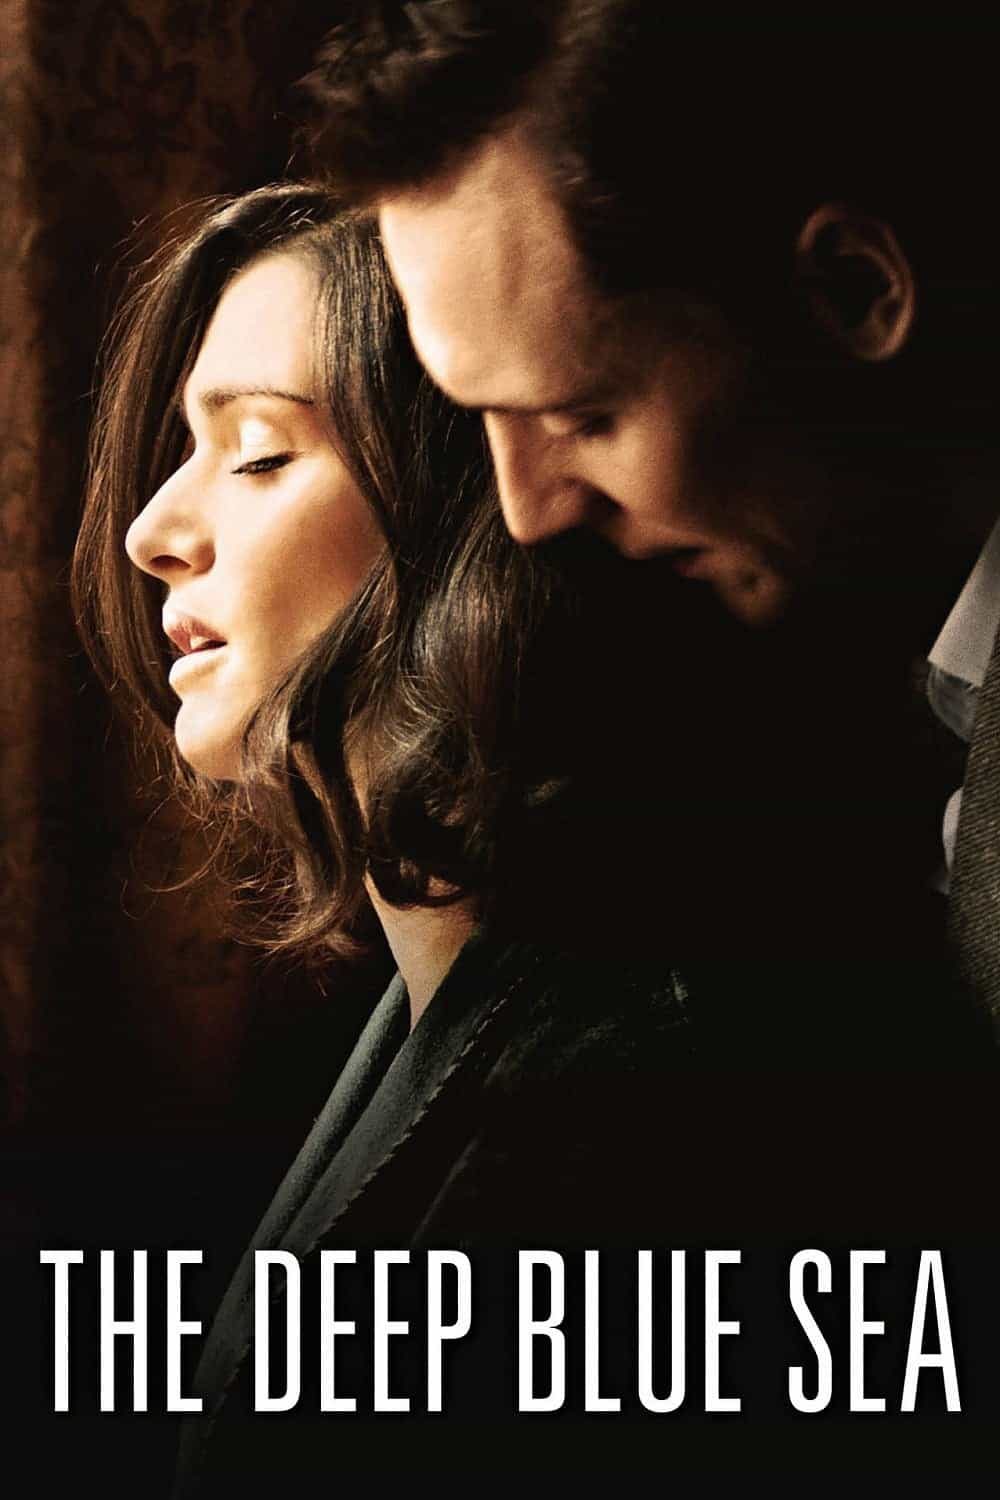 The Deep Blue Sea, 2011